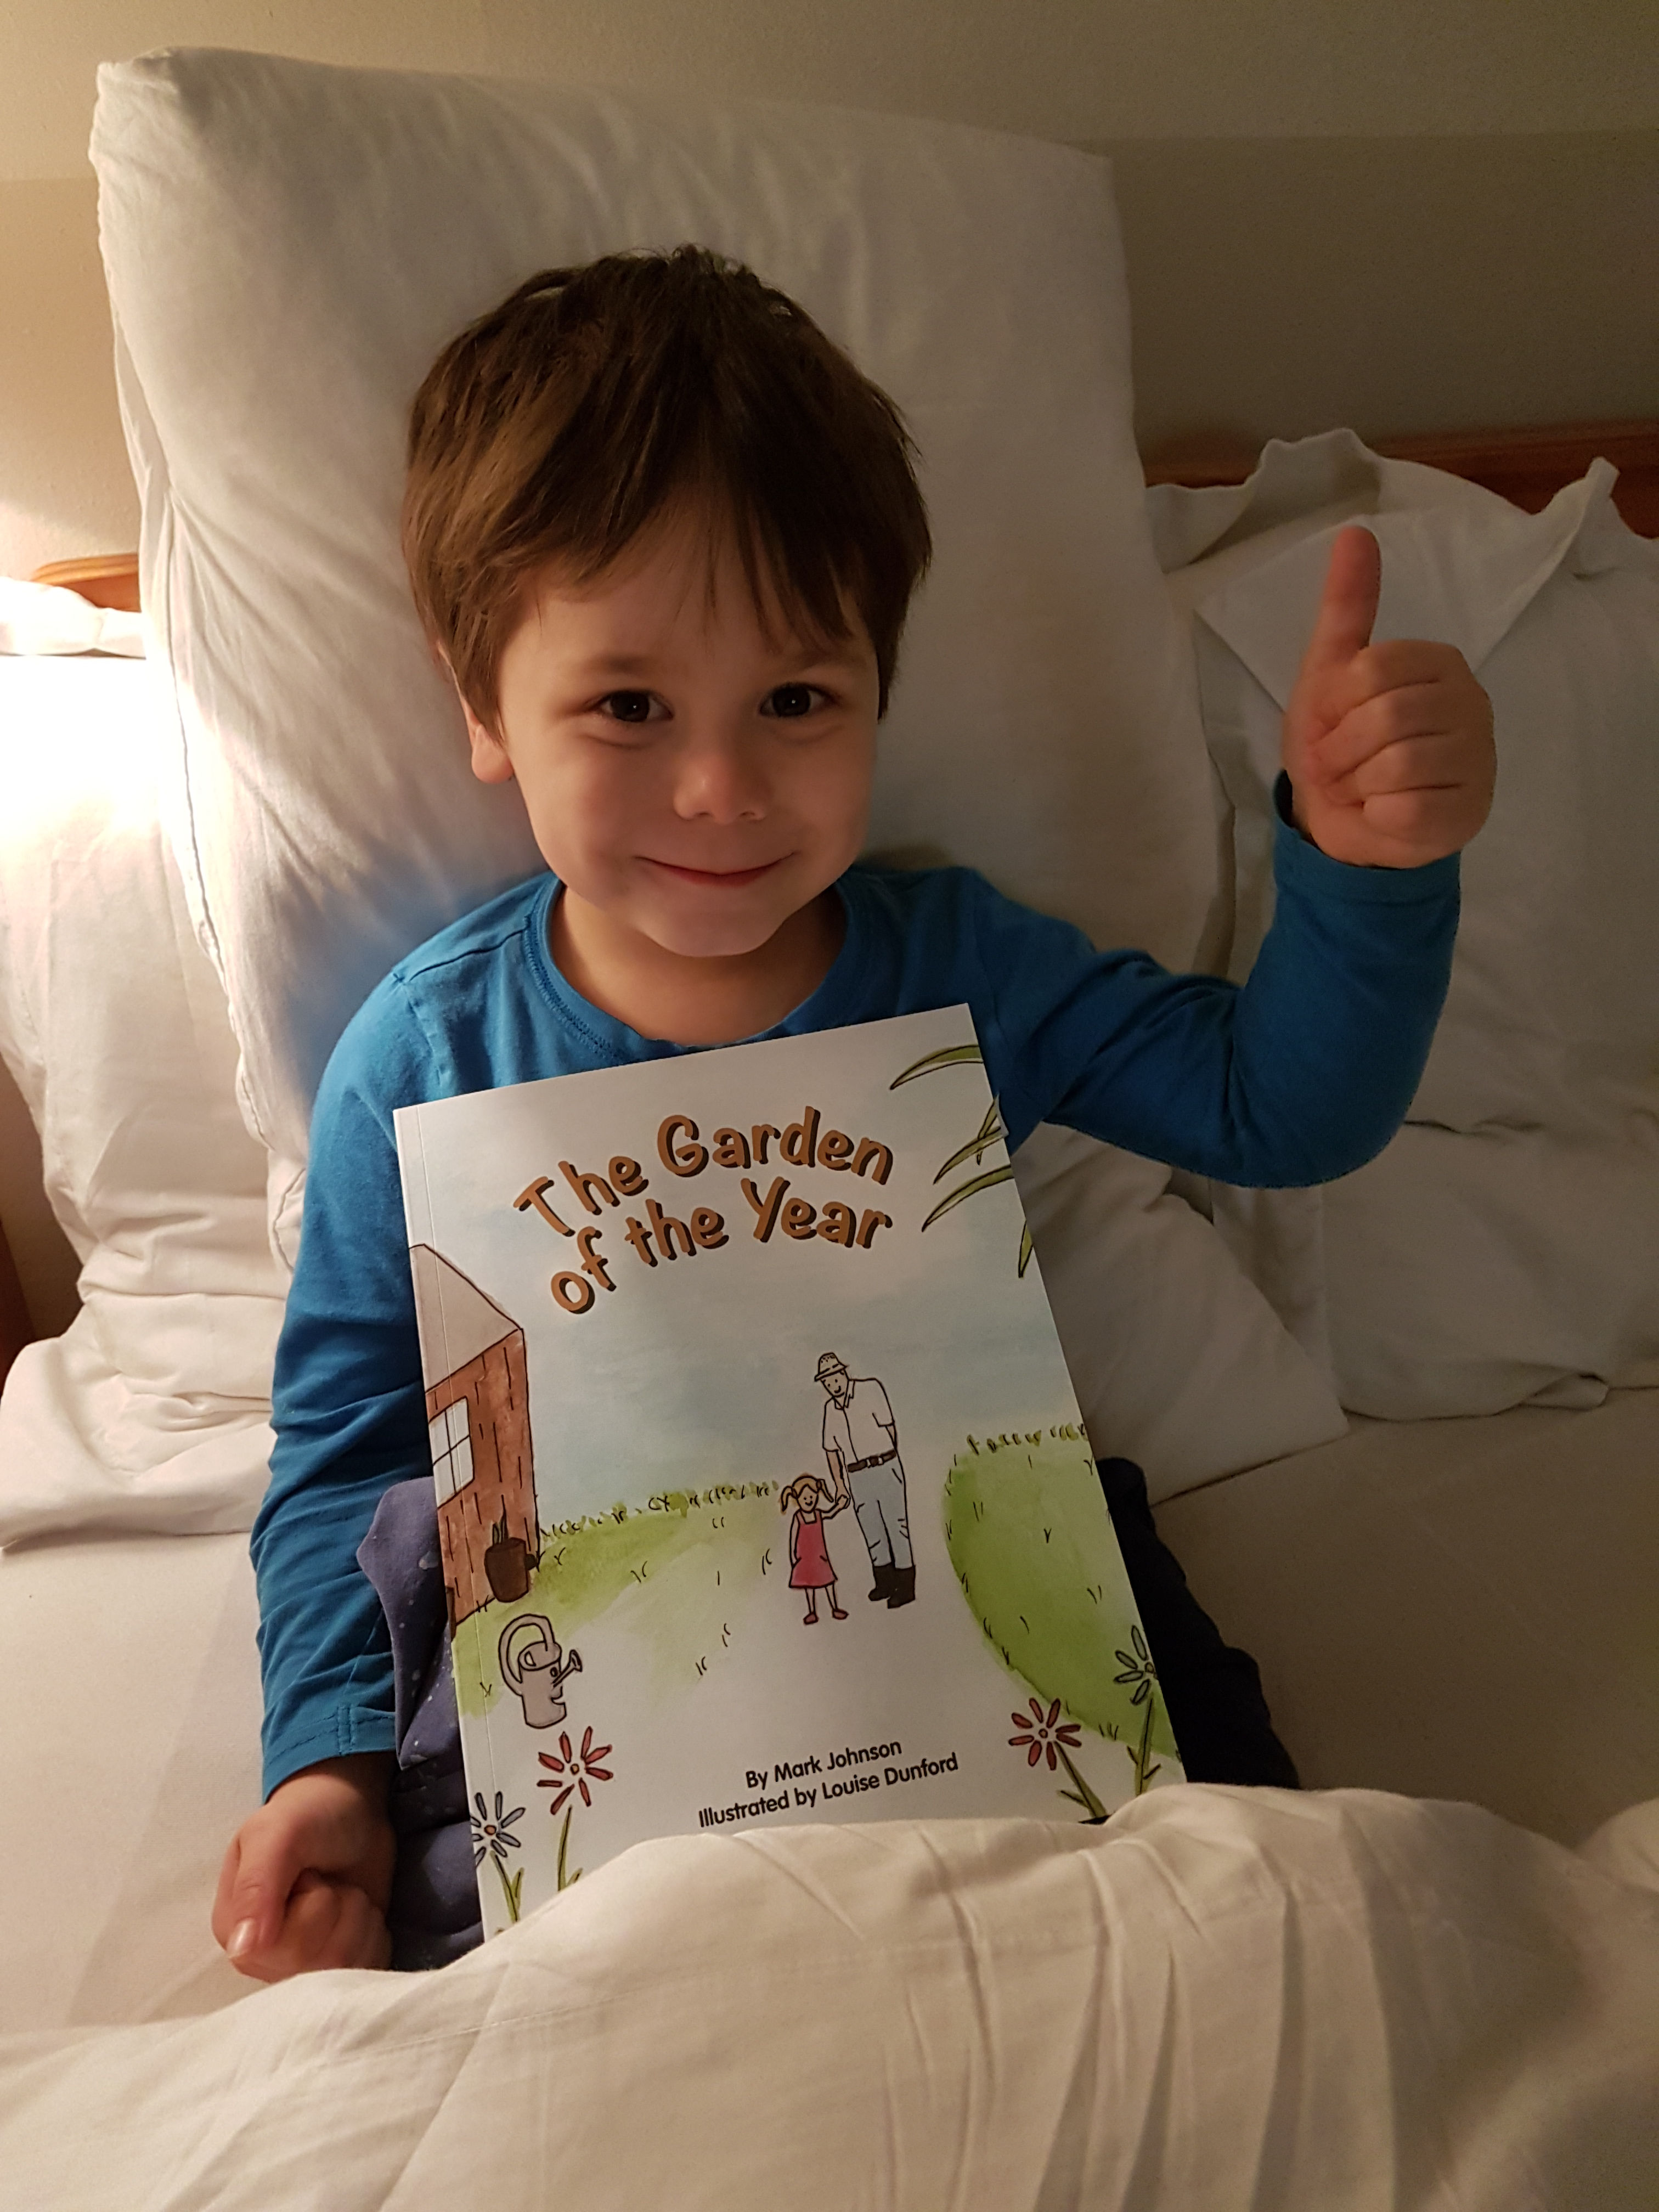 cody thumbs up holding book